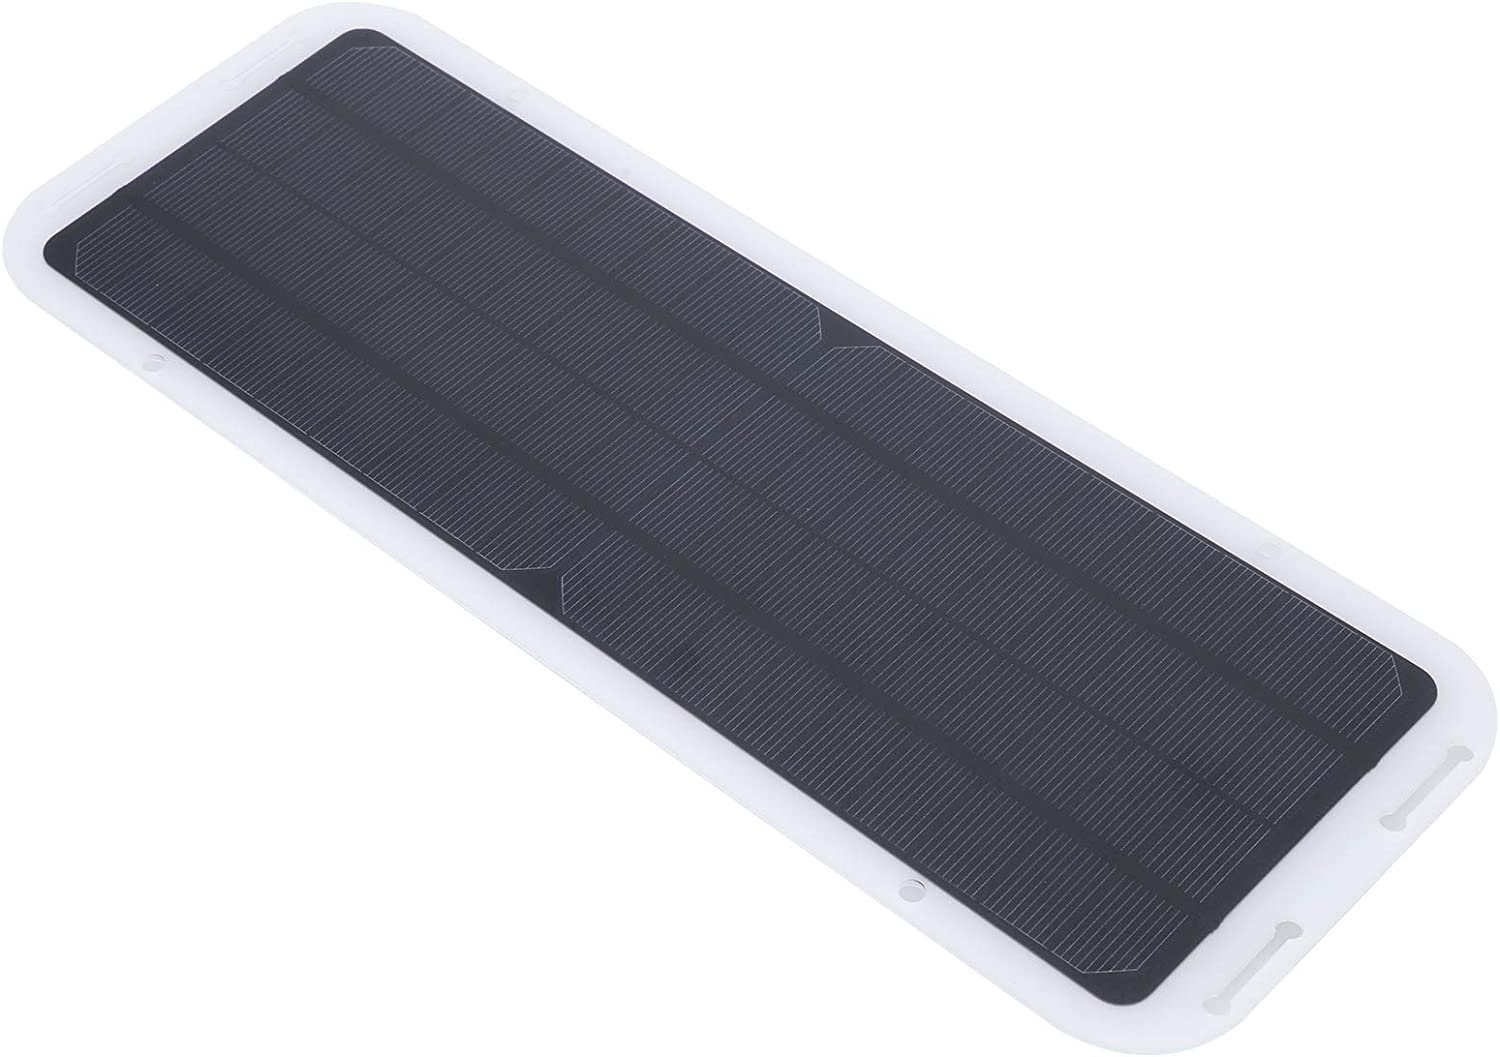 Pwshymi Gifts Solar Surprise price Charger Panel Mo Automobiles for Lightweight